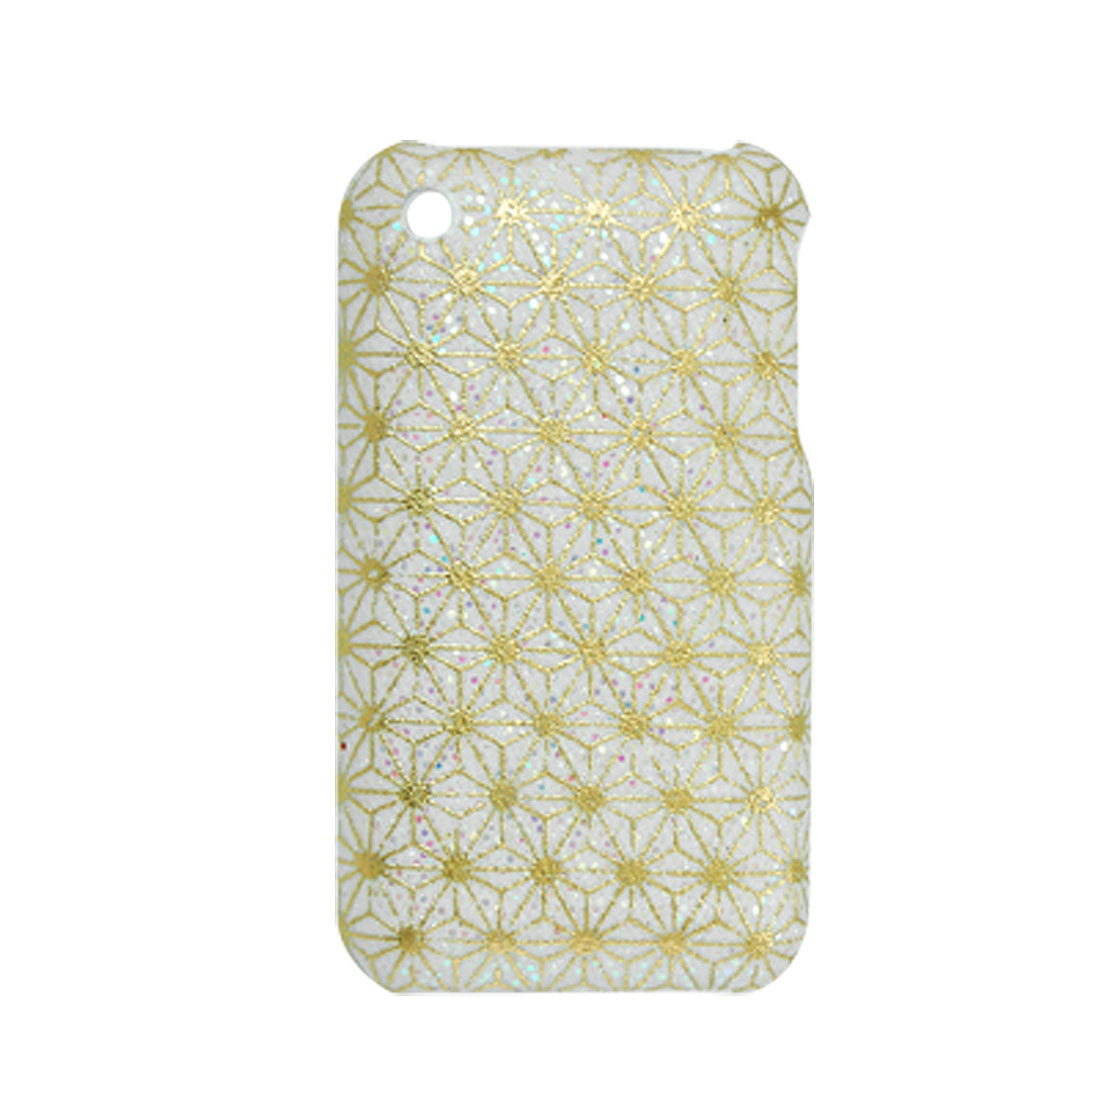 White Glittery Flower Nonskid Back Guard for iPhone 3G